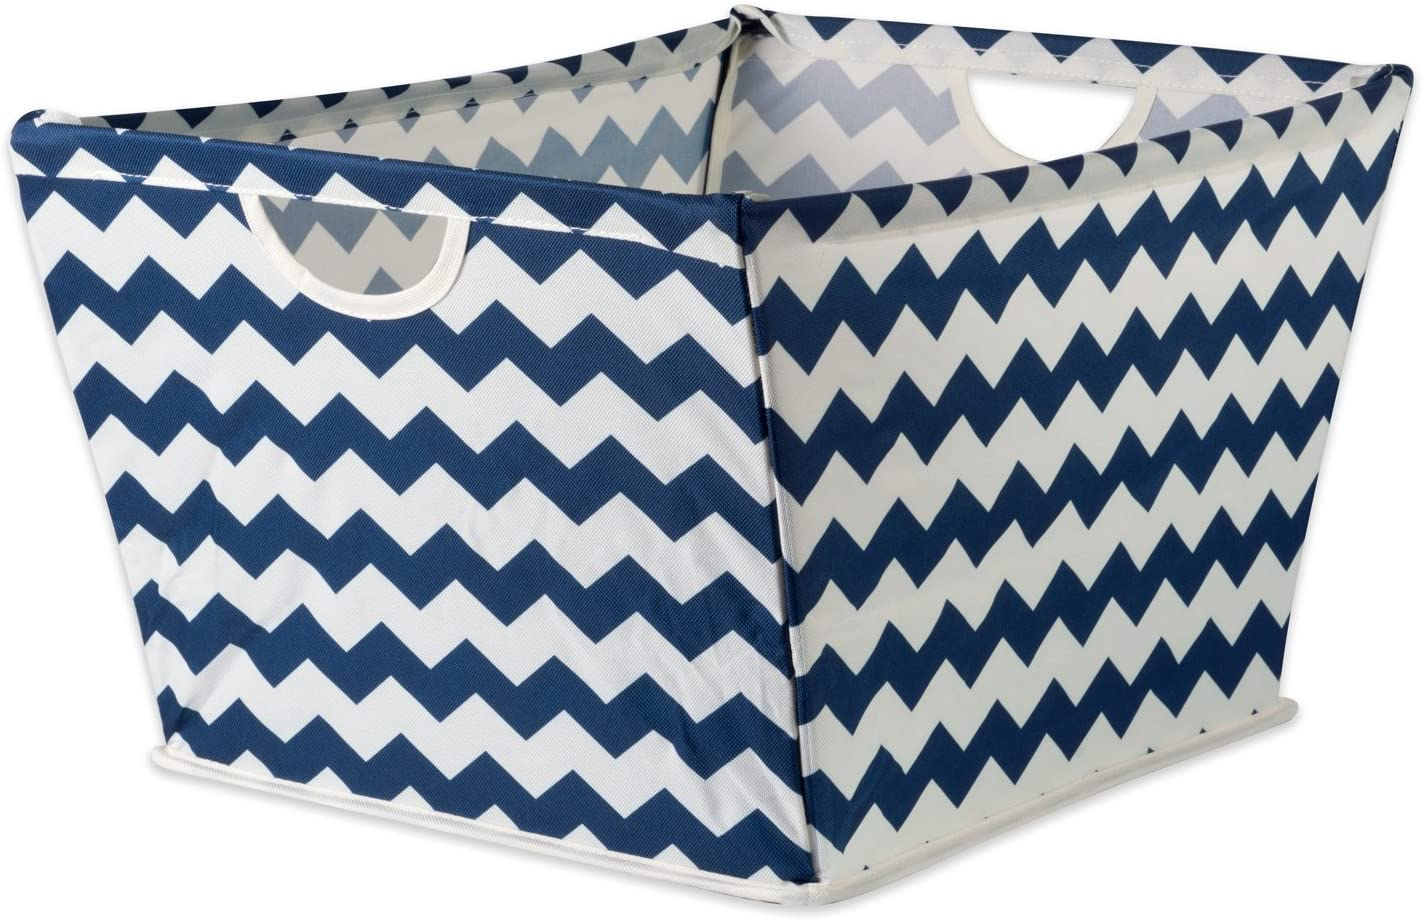 DII Collapsible Polyester Trapezoid Storage Basket, Home Organizational Solution for Office, Bedroom, Closet, & Toys (Medium - 16x12x10